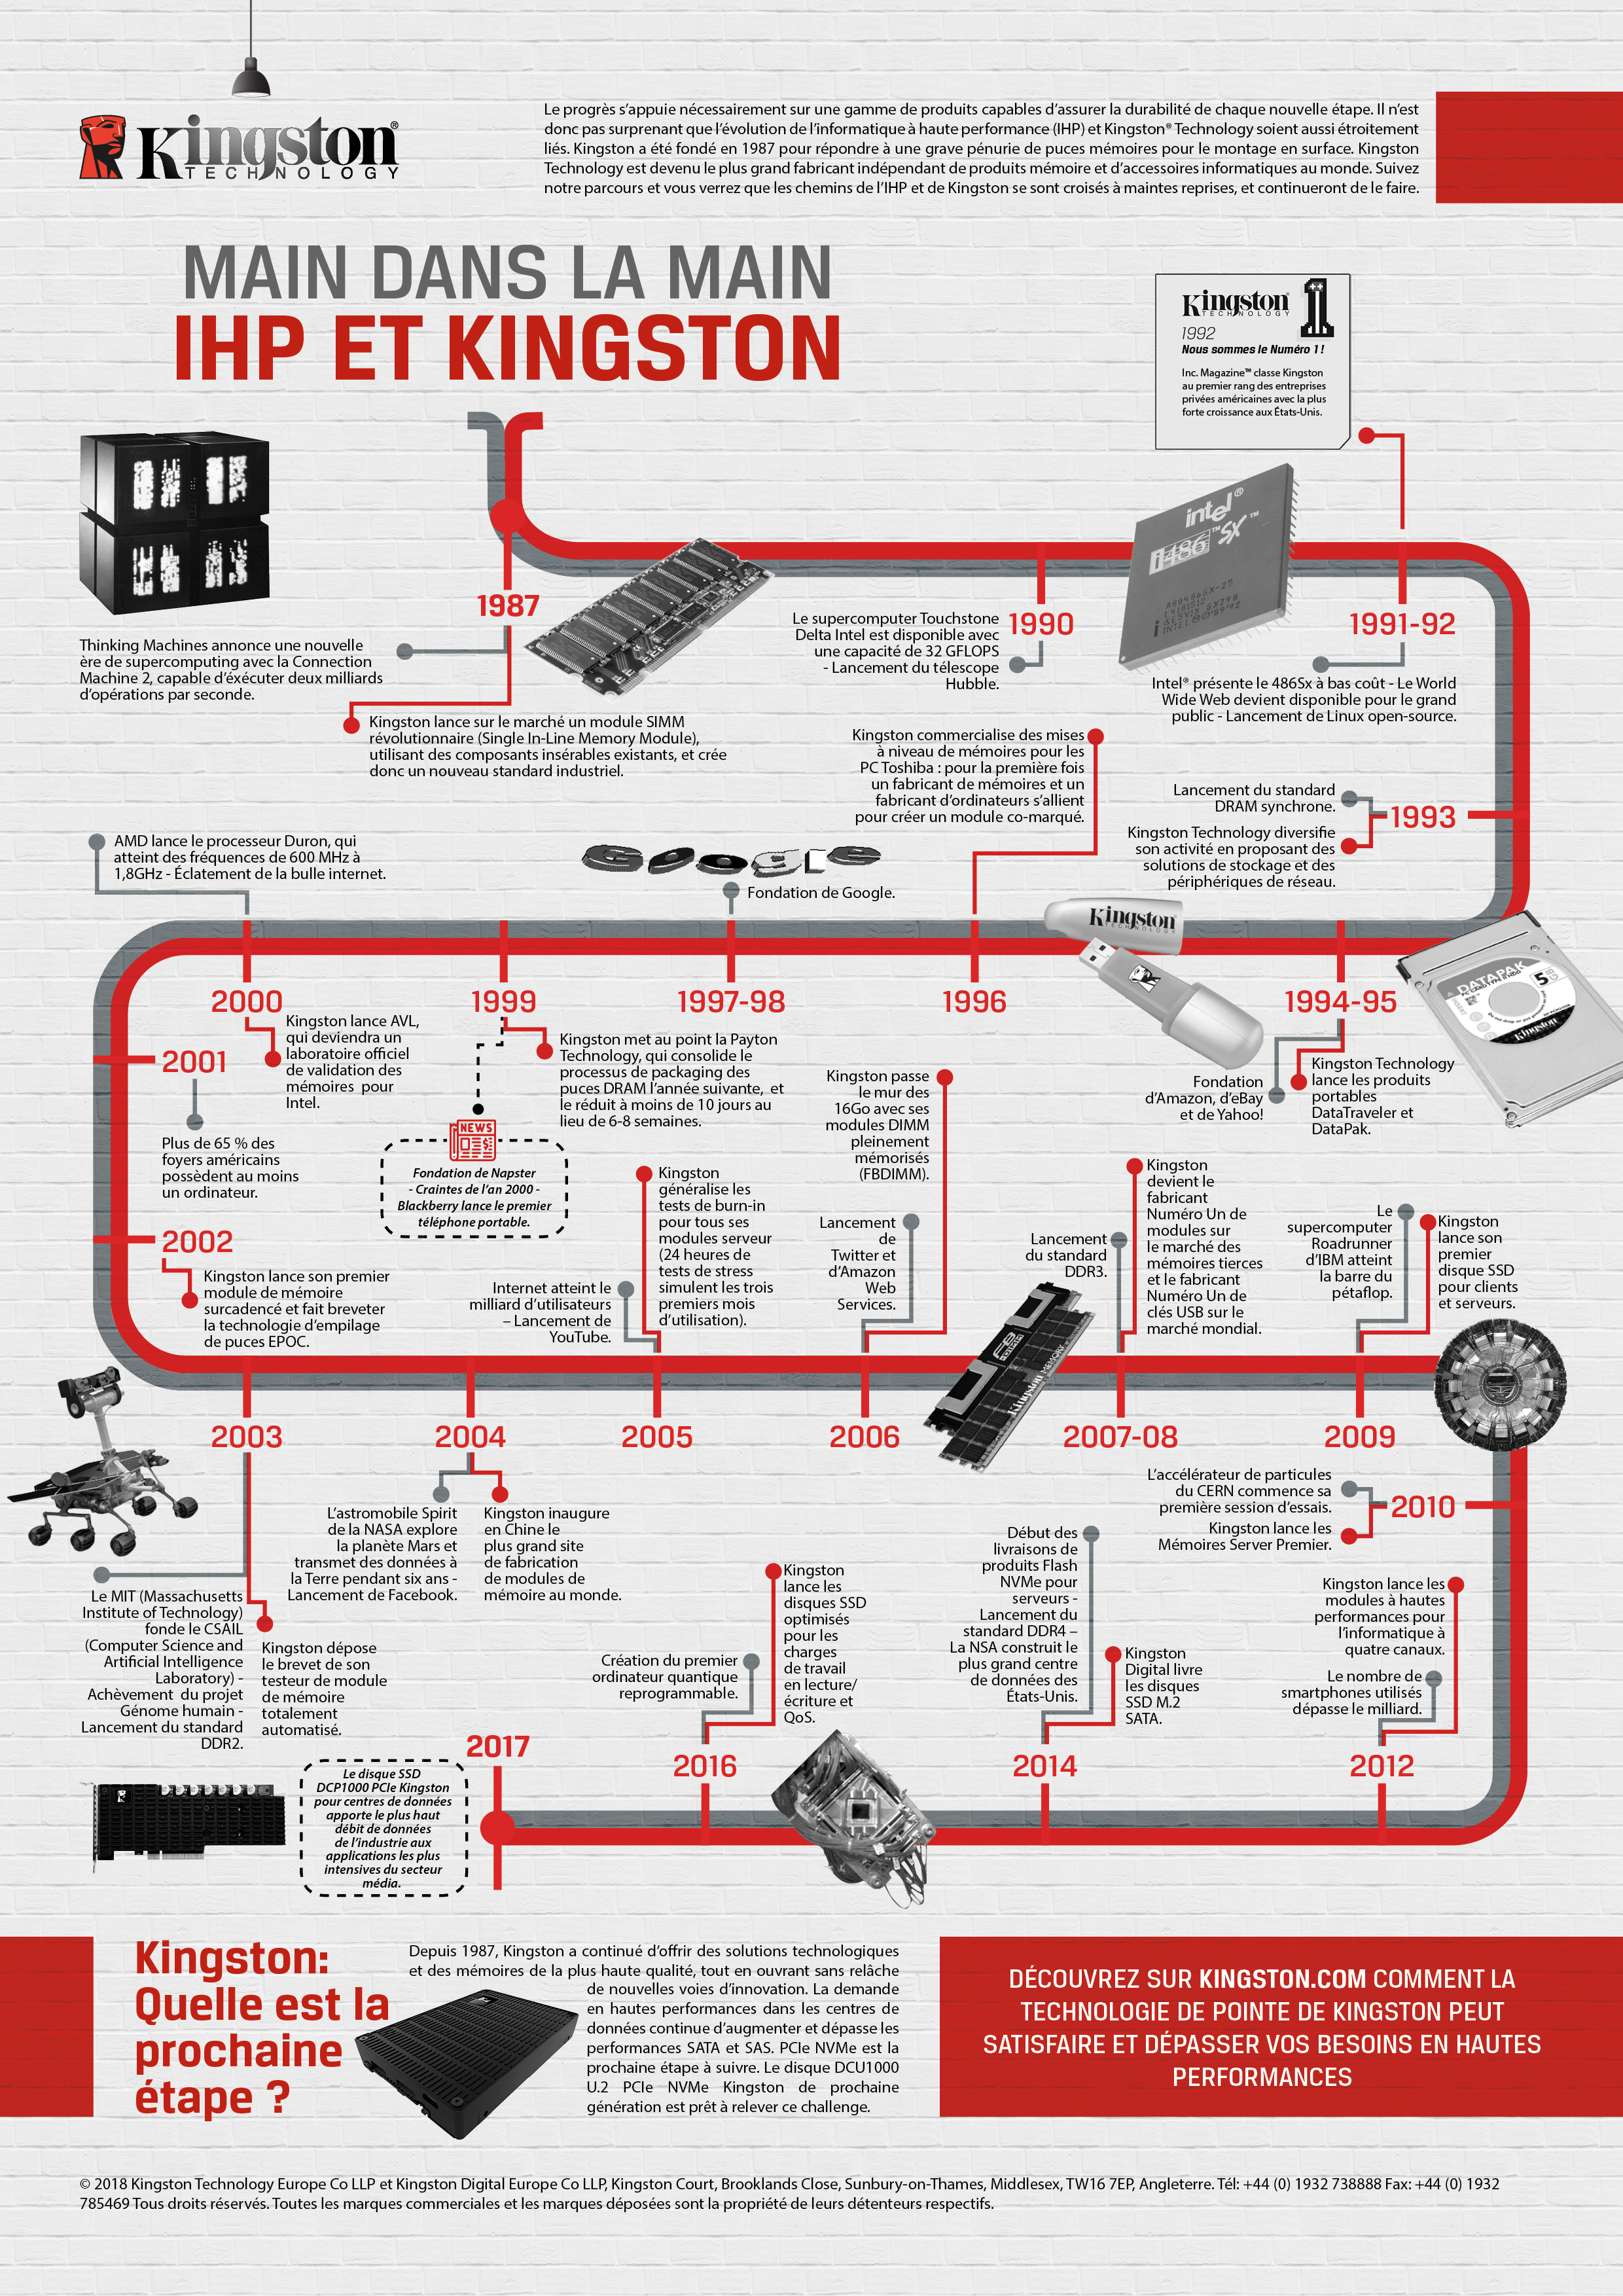 Main dans la main - HPC et Kingston